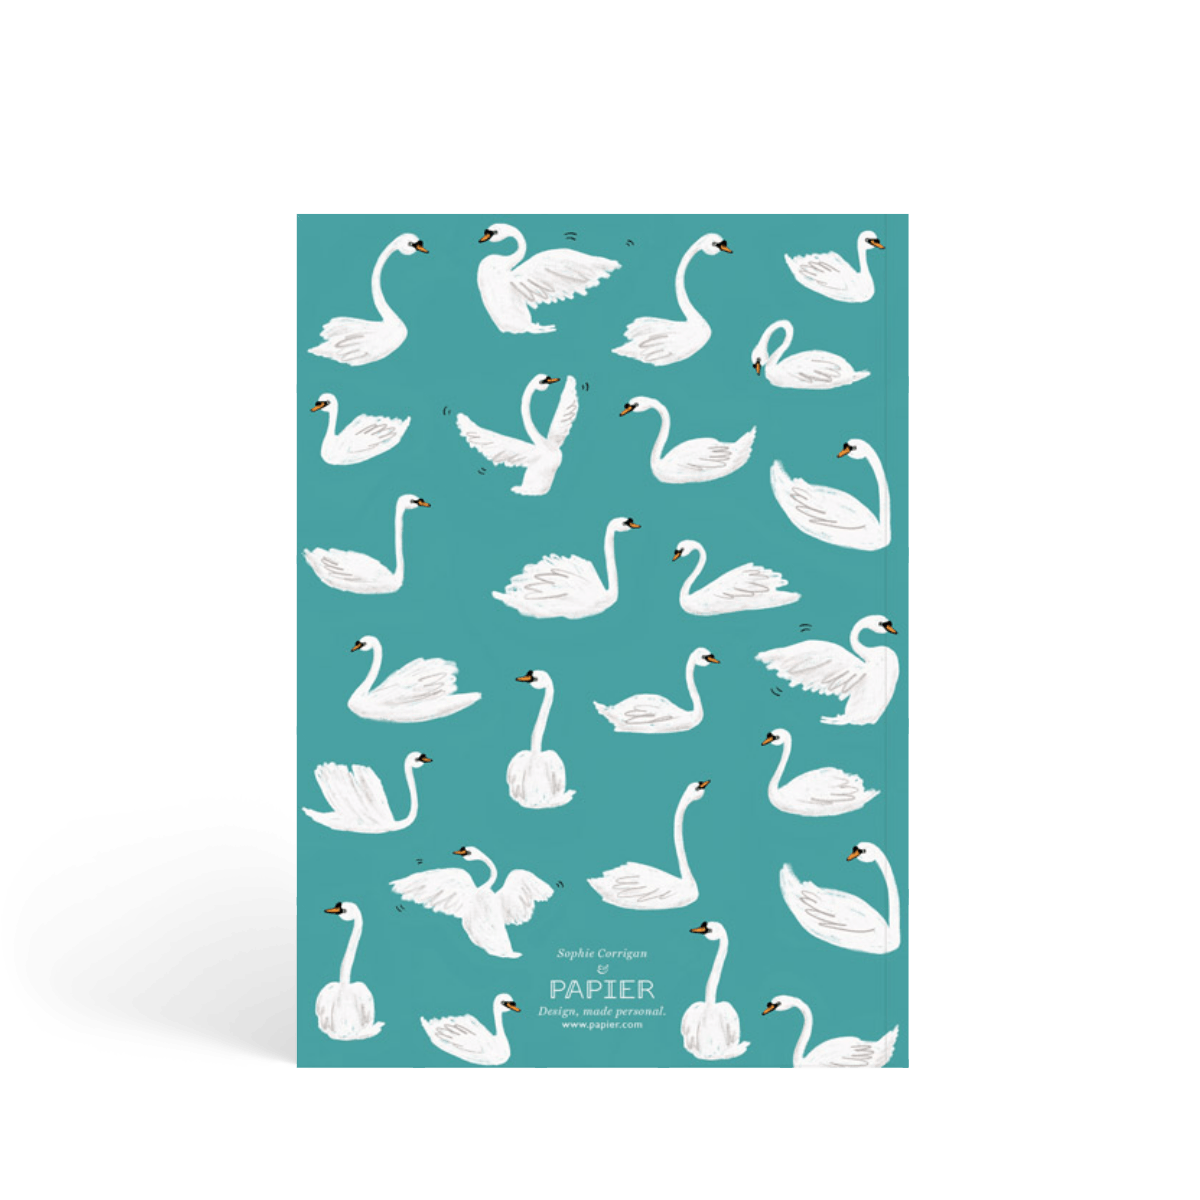 Https%3a%2f%2fwww.papier.com%2fproduct image%2f57150%2f5%2fblue swans 13725 back 1542370460.png?ixlib=rb 1.1